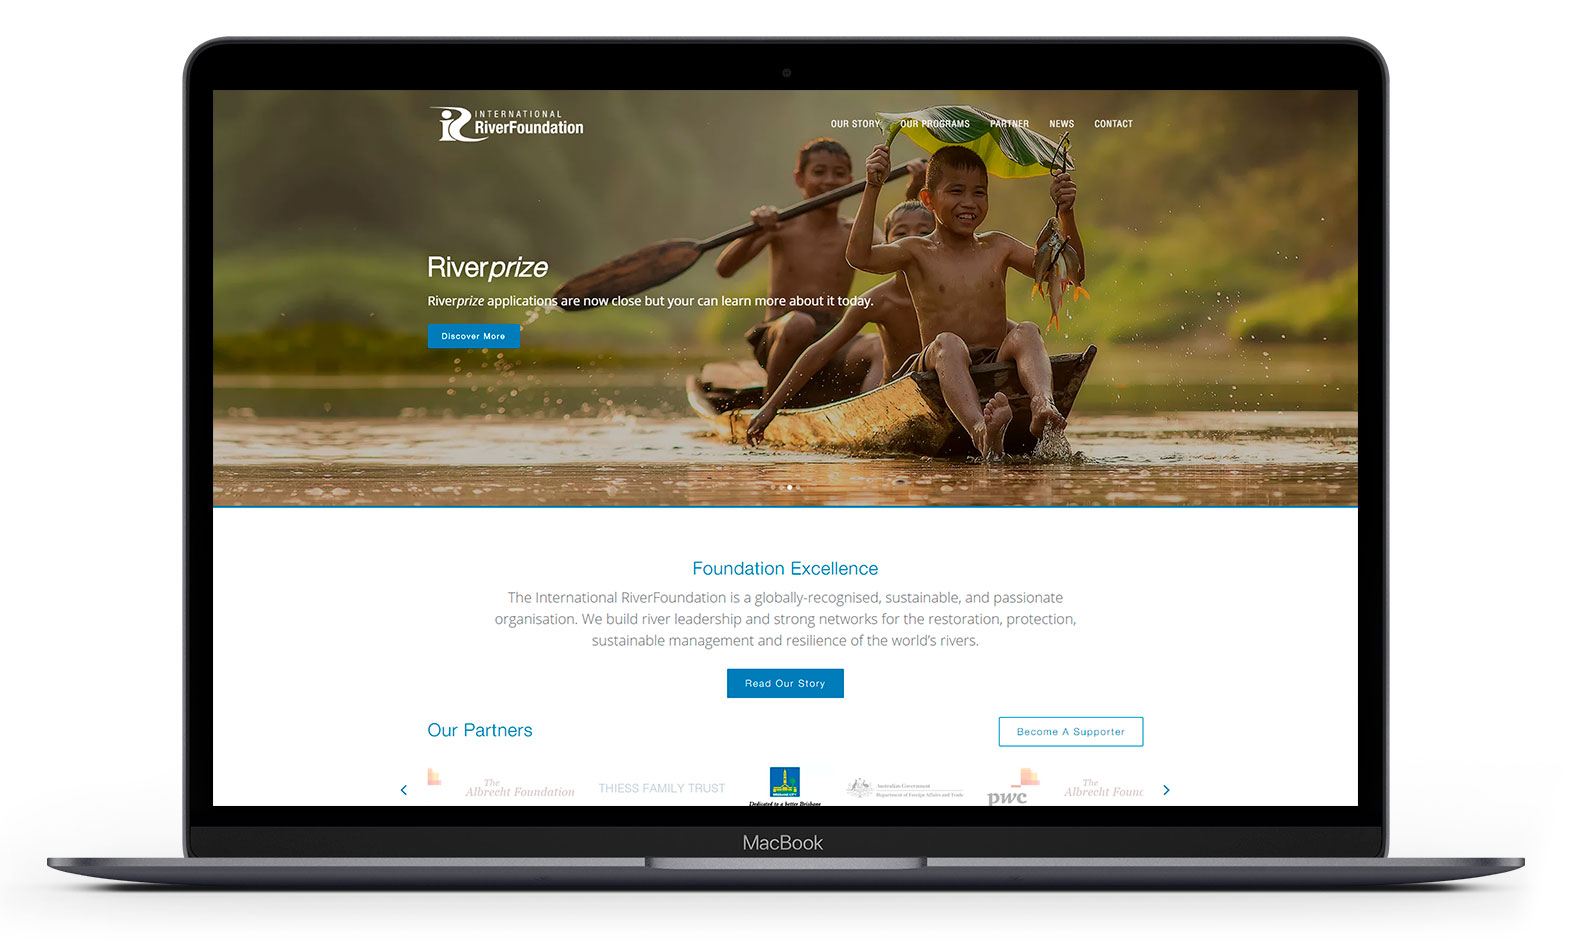 International RiverFoundation's website design displayed responsive devices